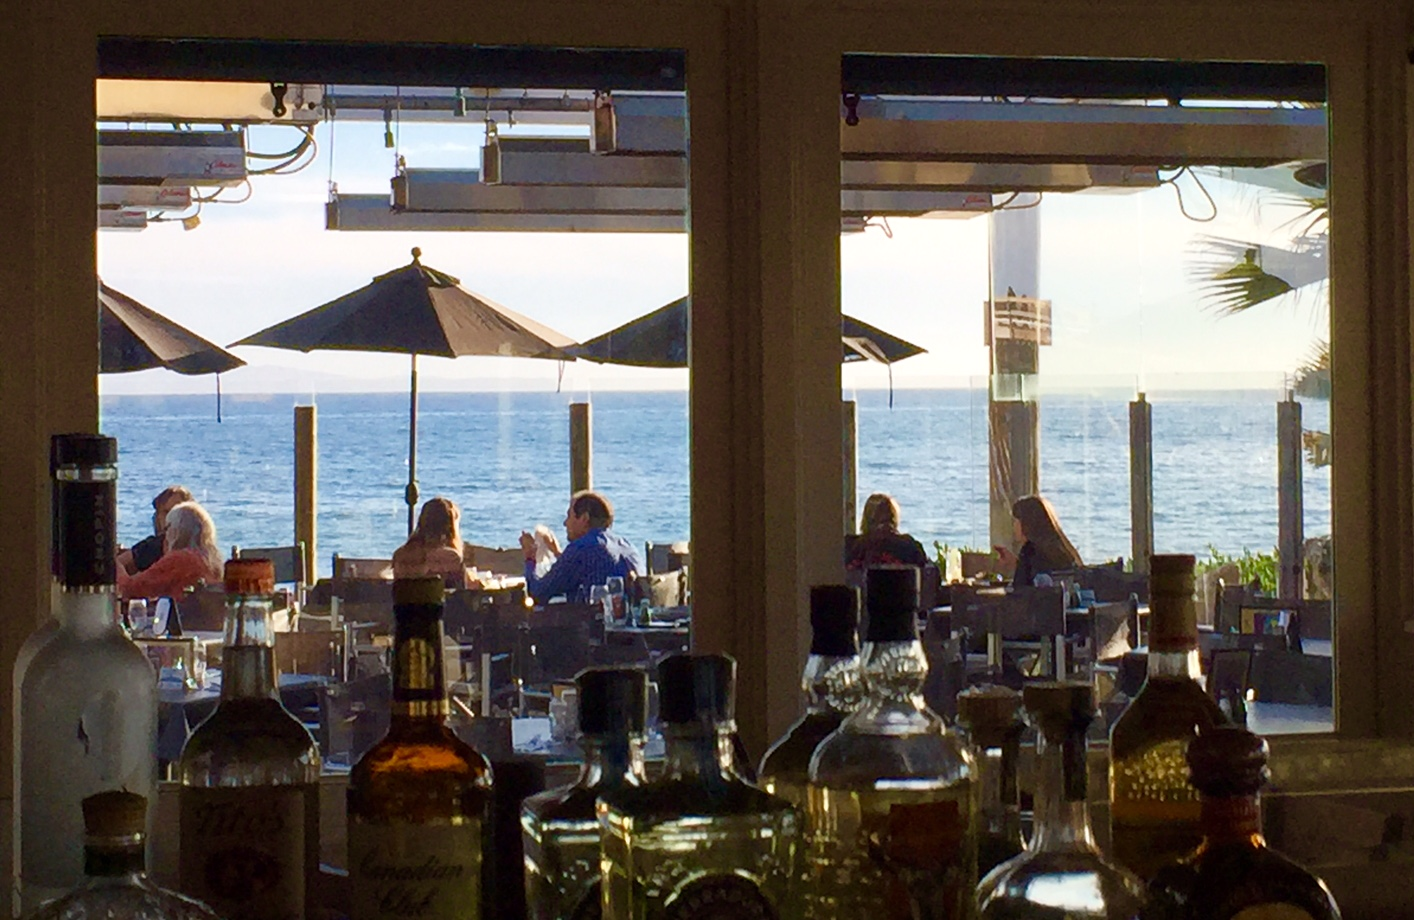 View of Goleta Beach and the Restaurant Patio